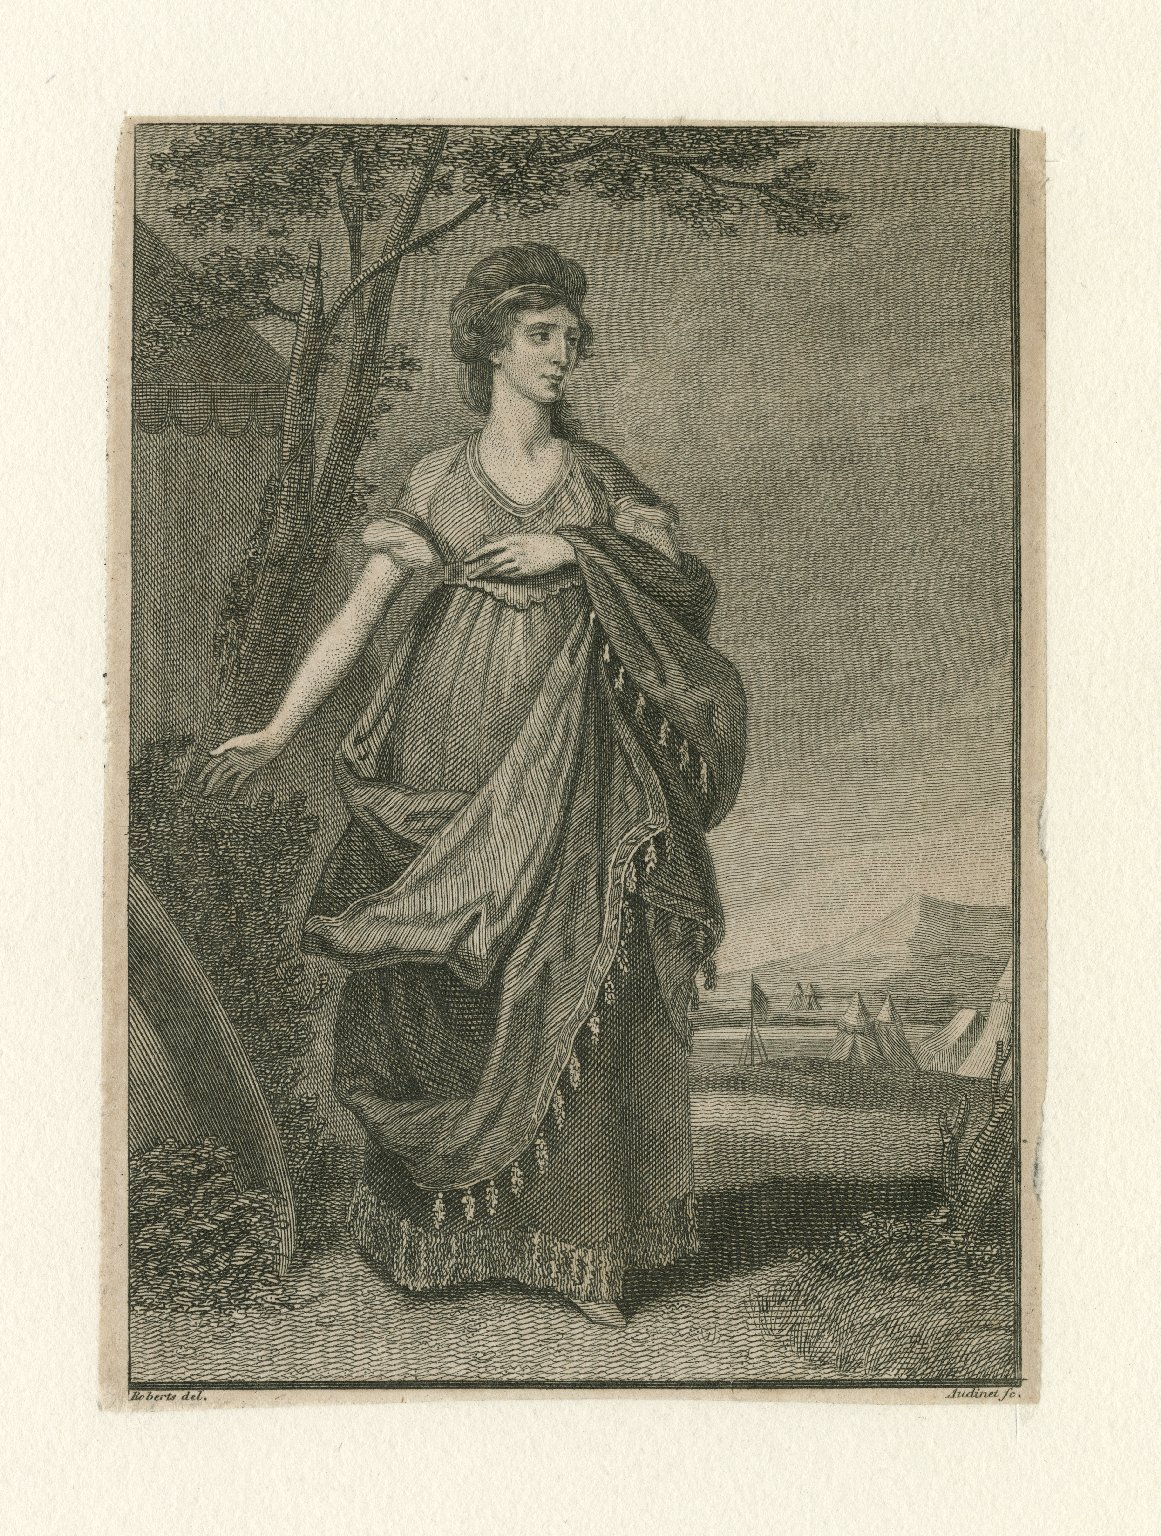 Mrs. Townsend as Christina [graphic] : Chr.: Oh, I fear, the war is now at work! / Roberts, del. ; Audinet, sc.